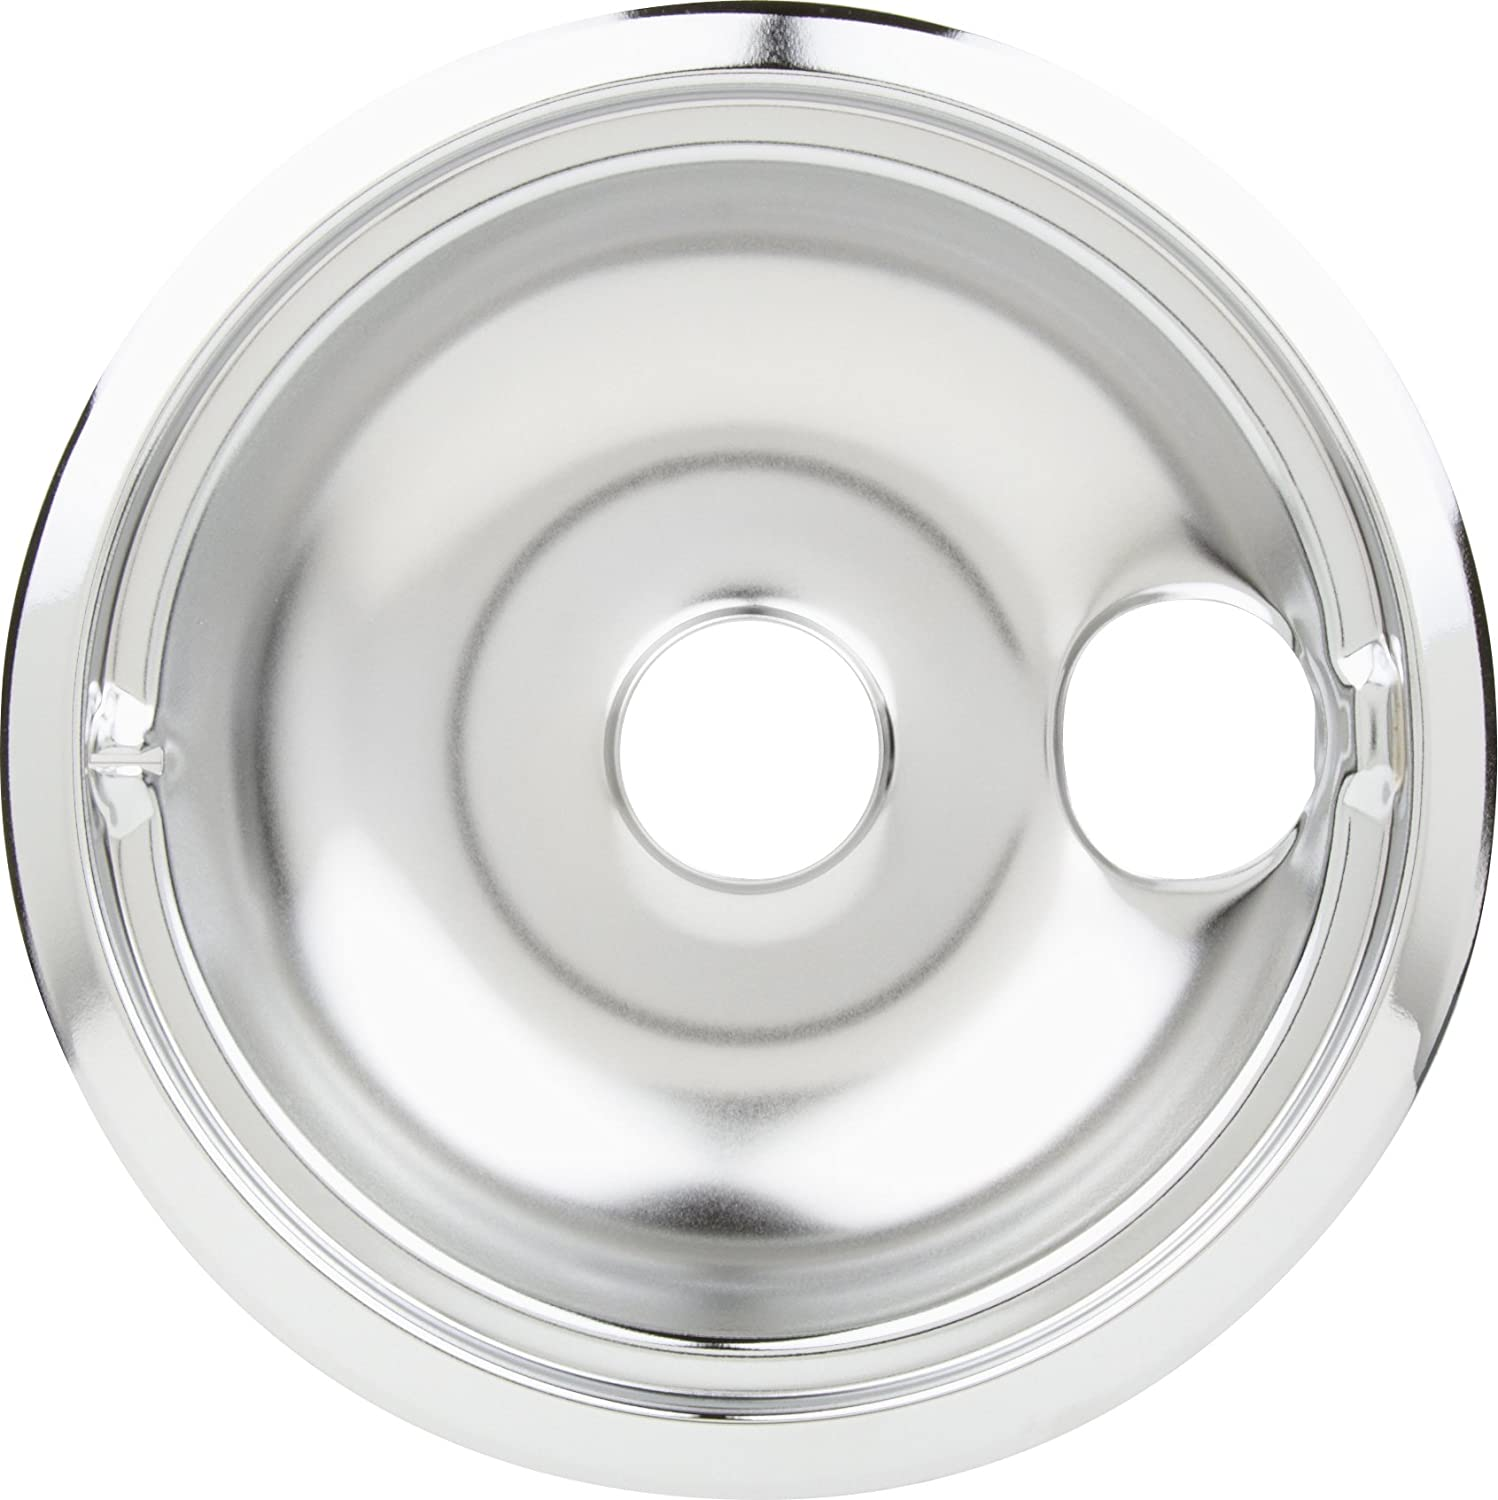 GE WB32X5076 8-Inch Drip Pan, Chrome